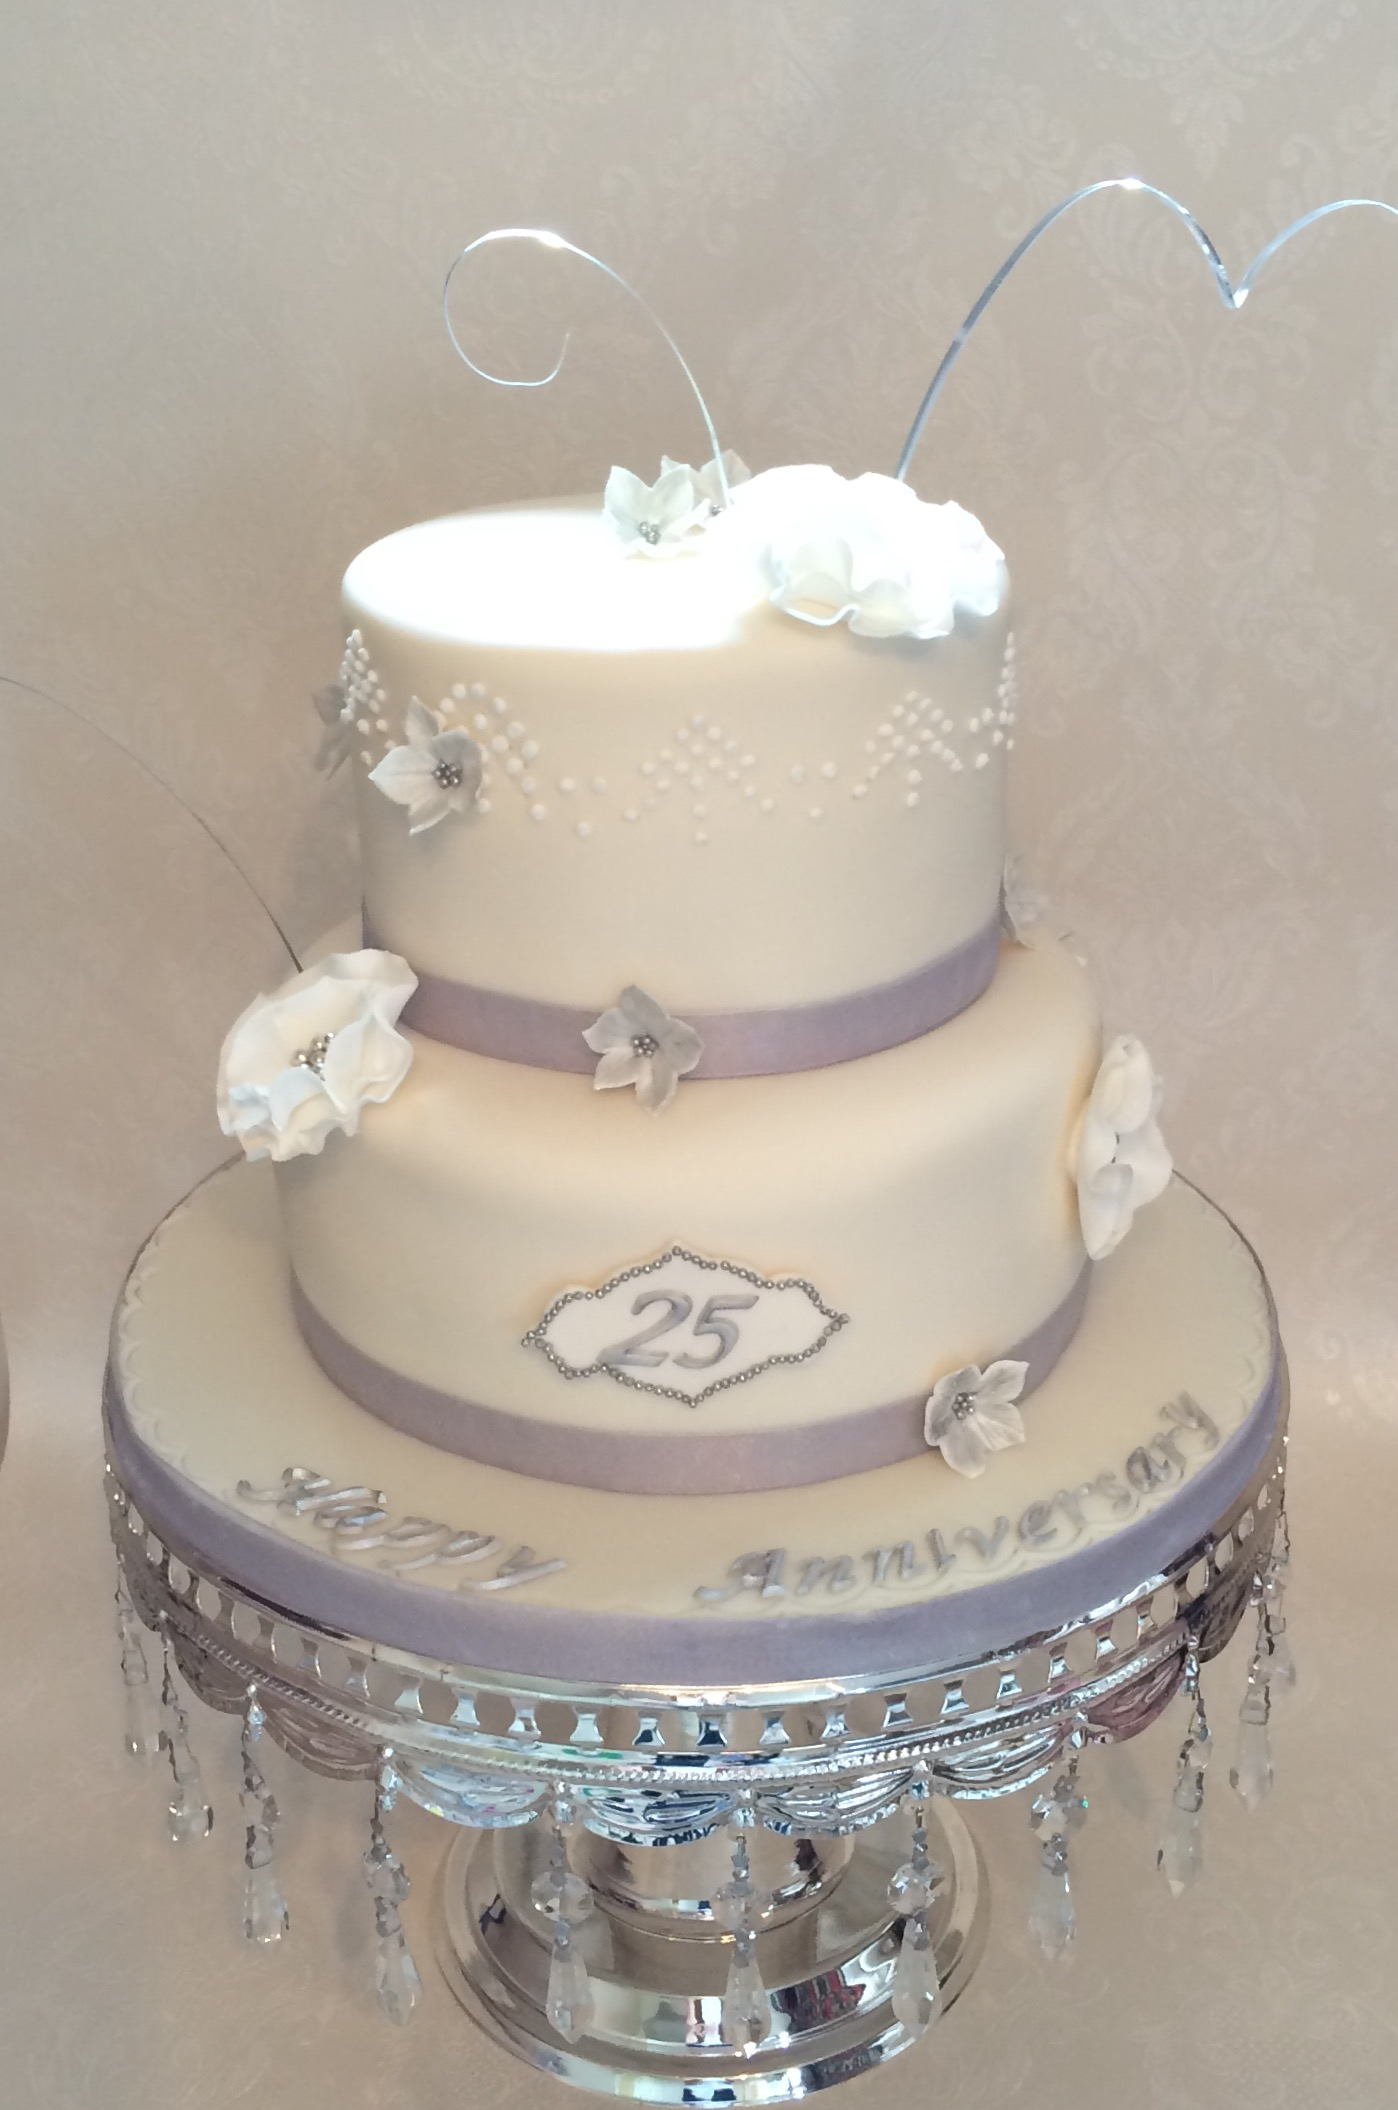 2 tier wedding cakes silver anniversary white s cake house 10169